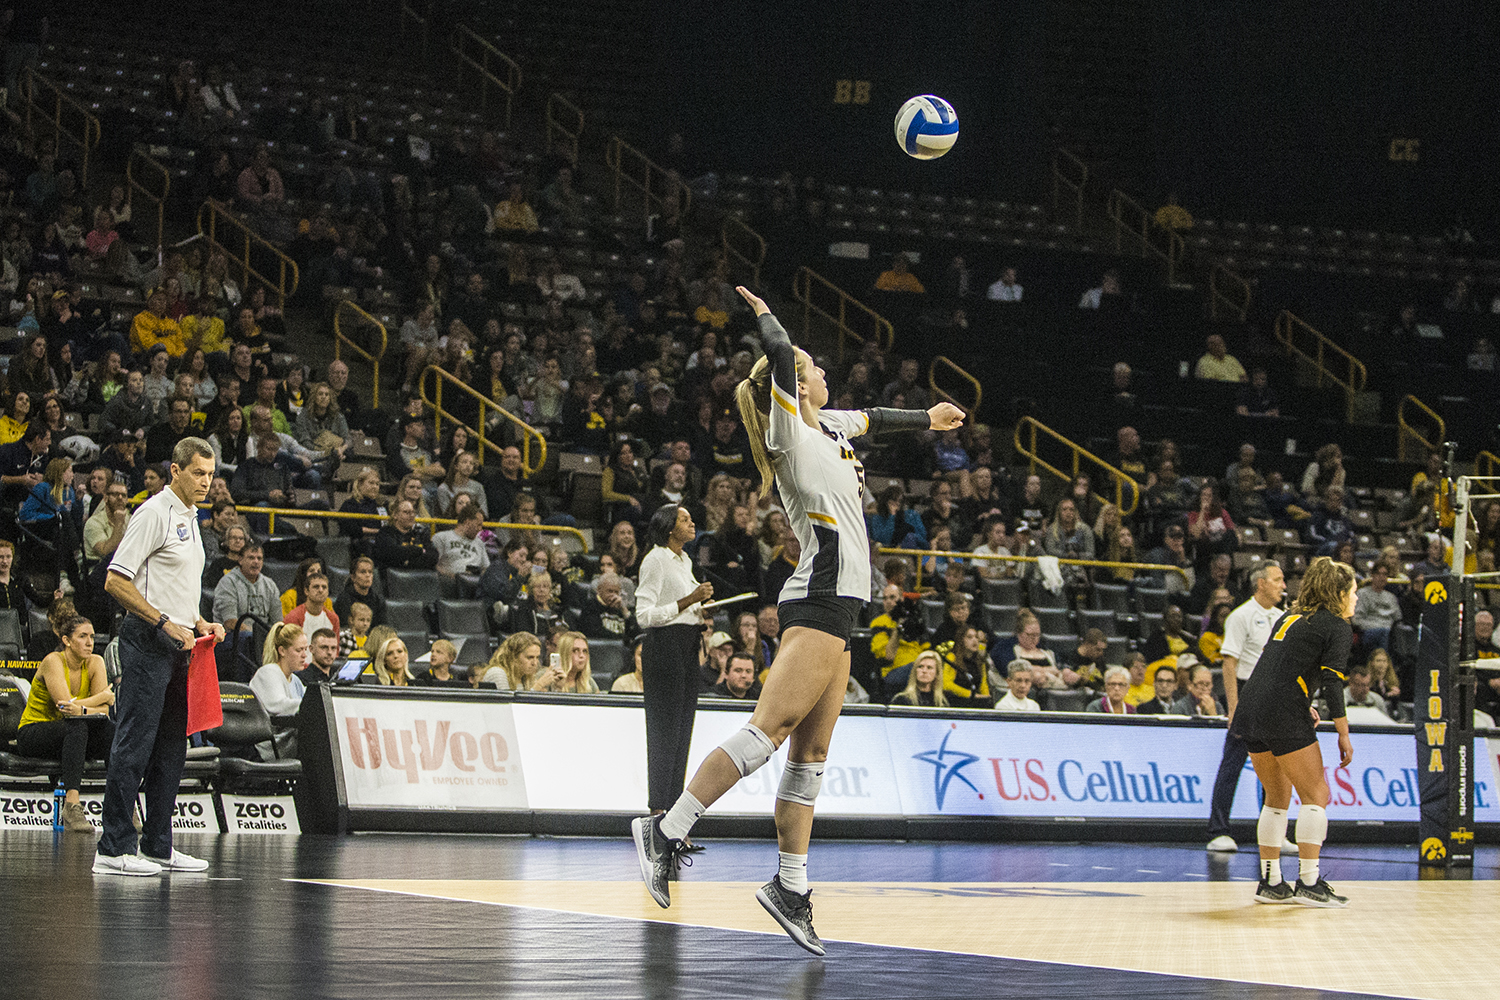 Iowa+junior+Meghan+Buzzerio+serves+during+a+volleyball+match+between+Iowa+and+Penn+State+at+Carver-Hawkeye+Arena+on+Saturday%2C+Nov.+3%2C+2018.+The+Hawkeyes+were+shut+out+by+the+Nittany+Lions%2C+3-0.